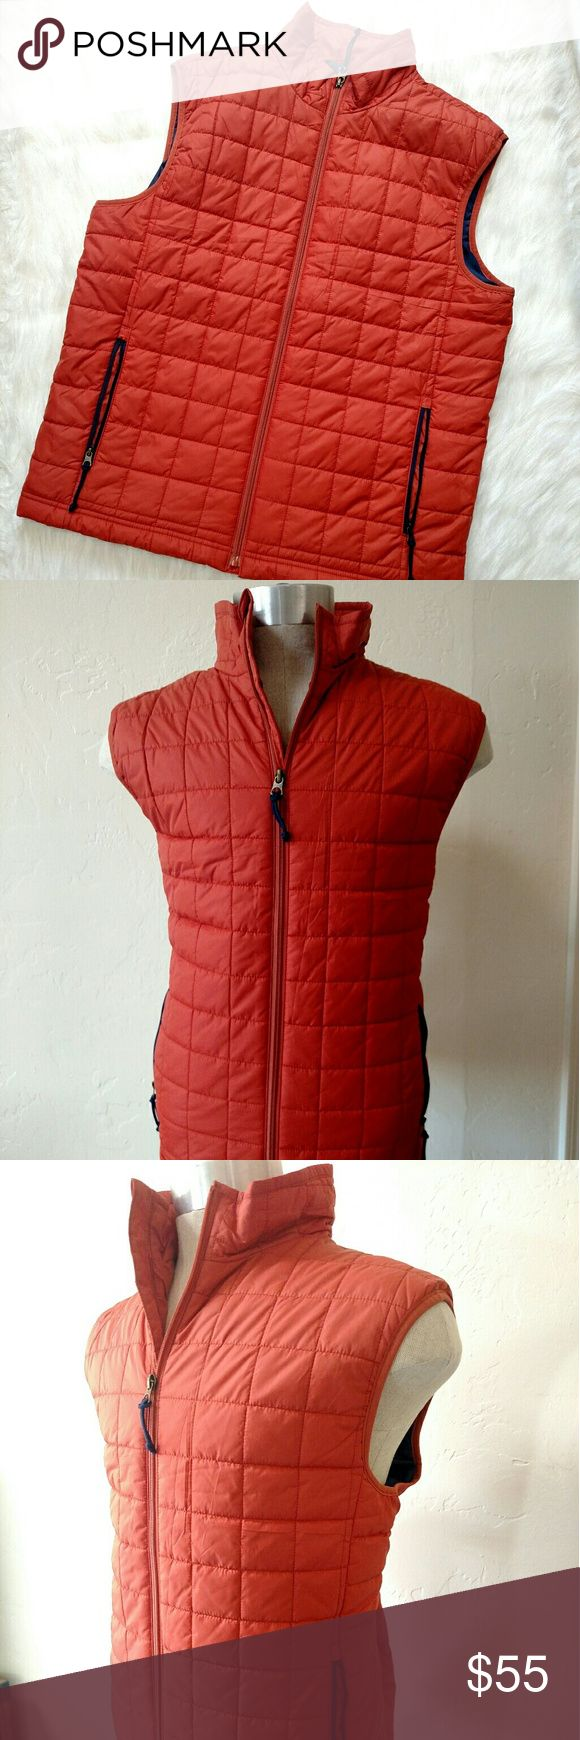 Old Navy vest large orange zipper Barely used no issues orange best from old Navy.  Two zipper pockets and full zipper front.  Light weight, and feels soft. Old Navy Jackets & Coats Vests